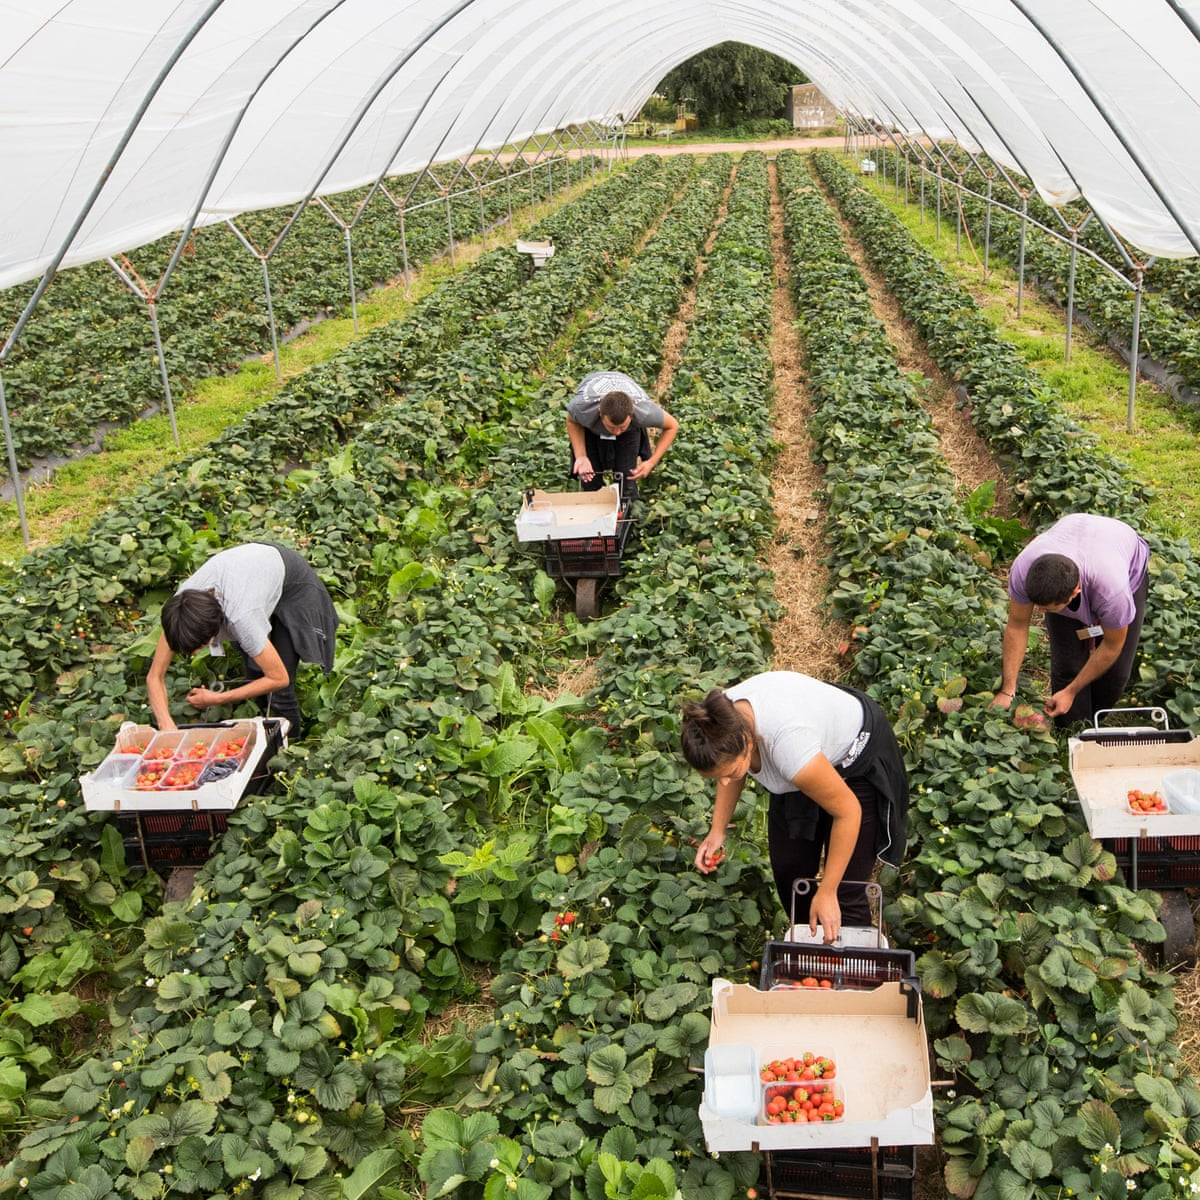 Fruit And Veg Will Run Out Unless Britain Charters Planes To Fly In Farm Workers From Eastern Europe Farming The Guardian